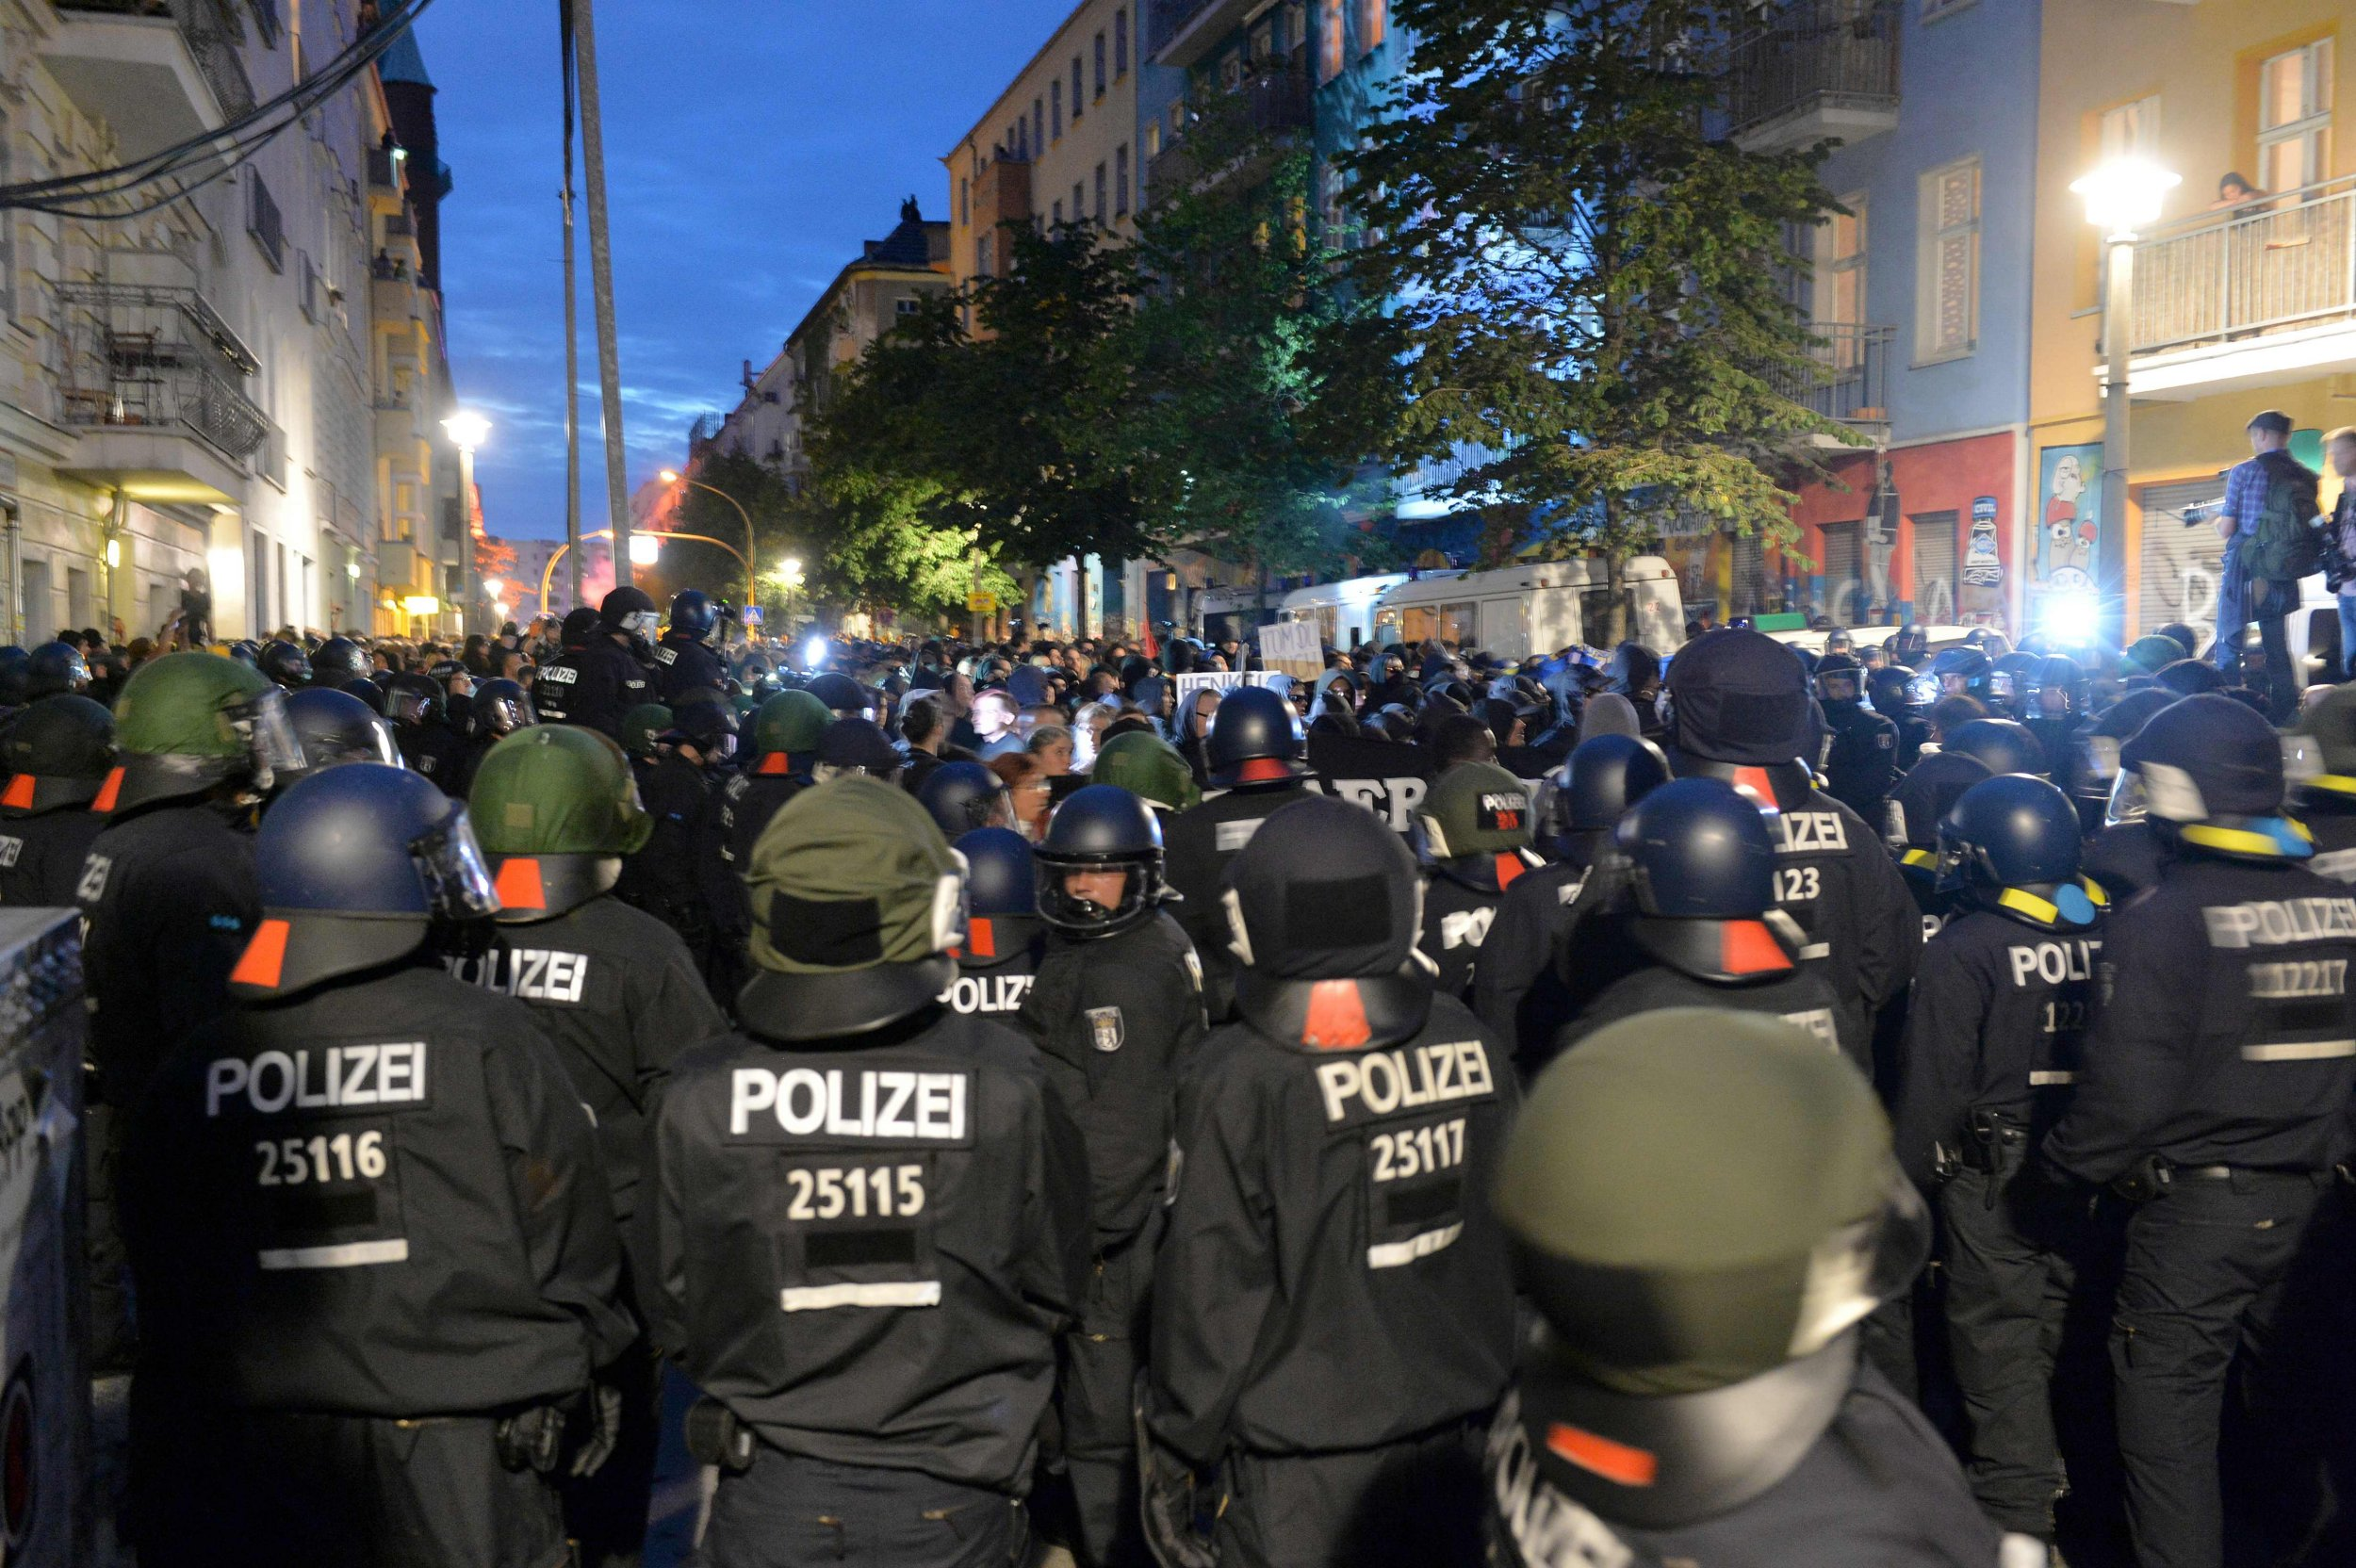 Policemen stand in front of a house in Berlin, on July 9, 2016. Police in the German capital said 123 officers were hurt in clashes with left-wing extremists who hurled rocks and bottles at them, smashed shop windows and set cars ablaze. The overnight street violence in Berlin follows weeks of escalating tensions around a building that is a centre of the far-left youth scene in the city and which has been repeatedly raided by police. / AFP PHOTO / dpa / Maurizio Gambarini / Germany OUTMAURIZIO GAMBARINI/AFP/Getty Images